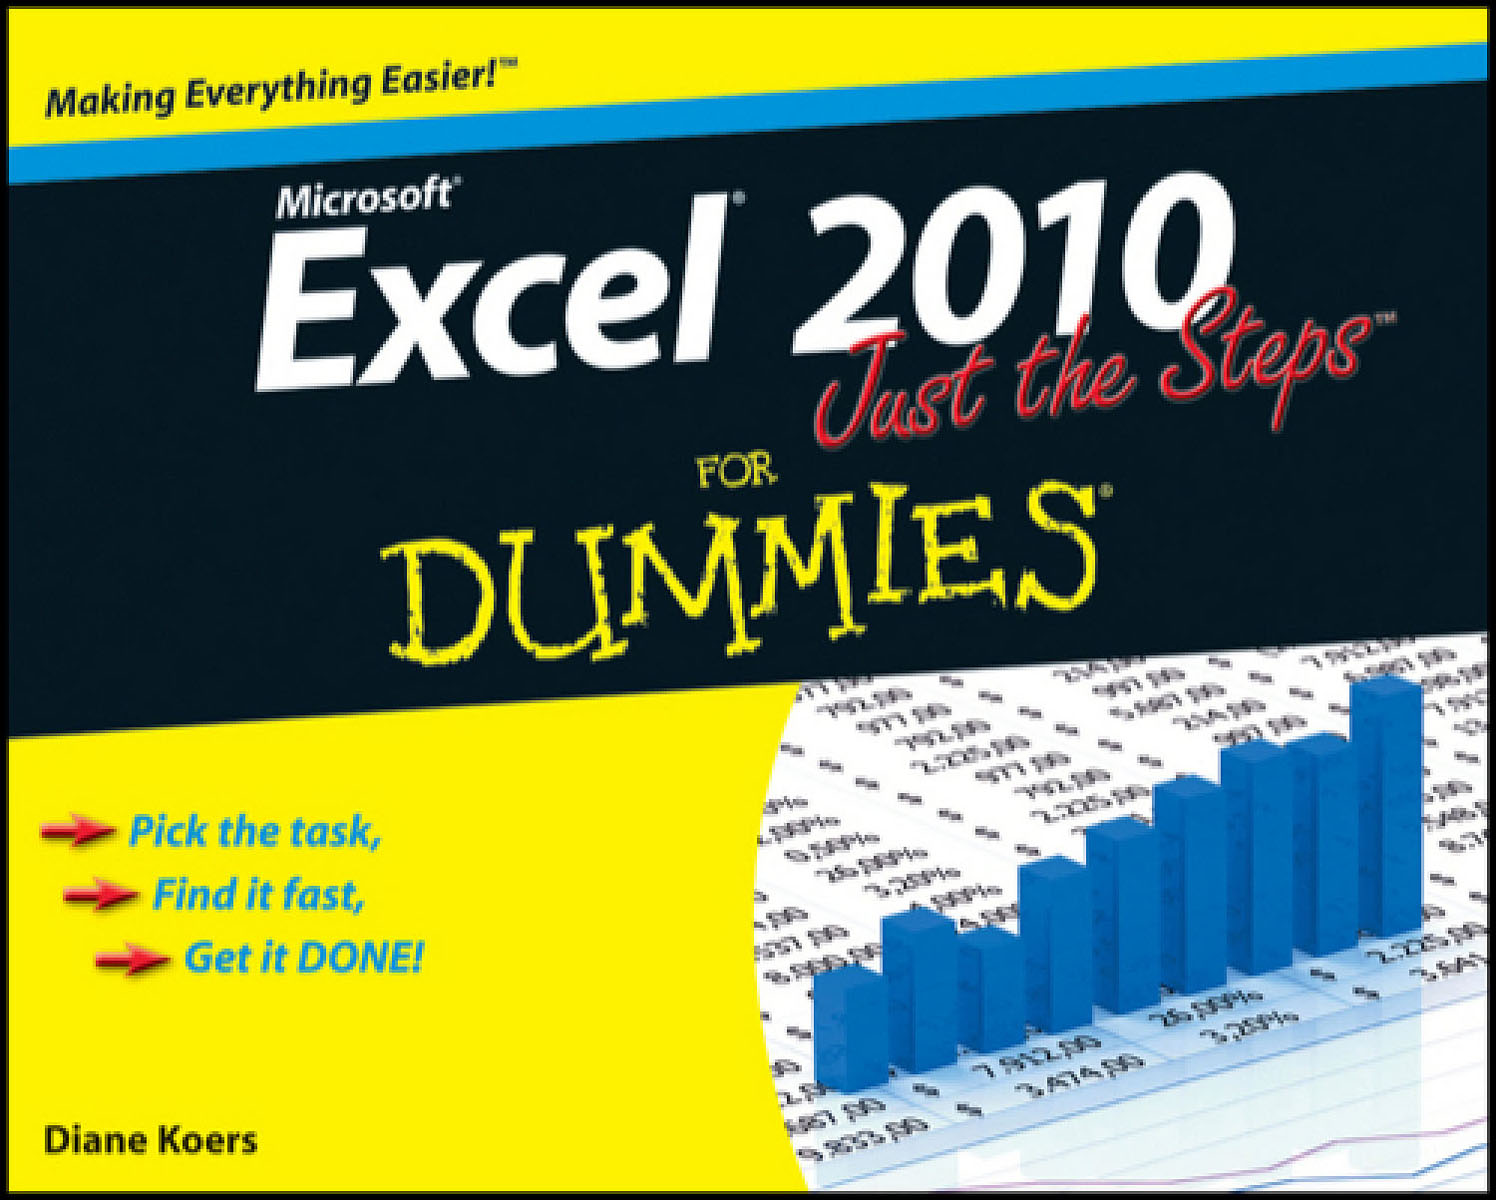 Excel® 2010 Just the Steps For Dummies® the imactm for dummies®